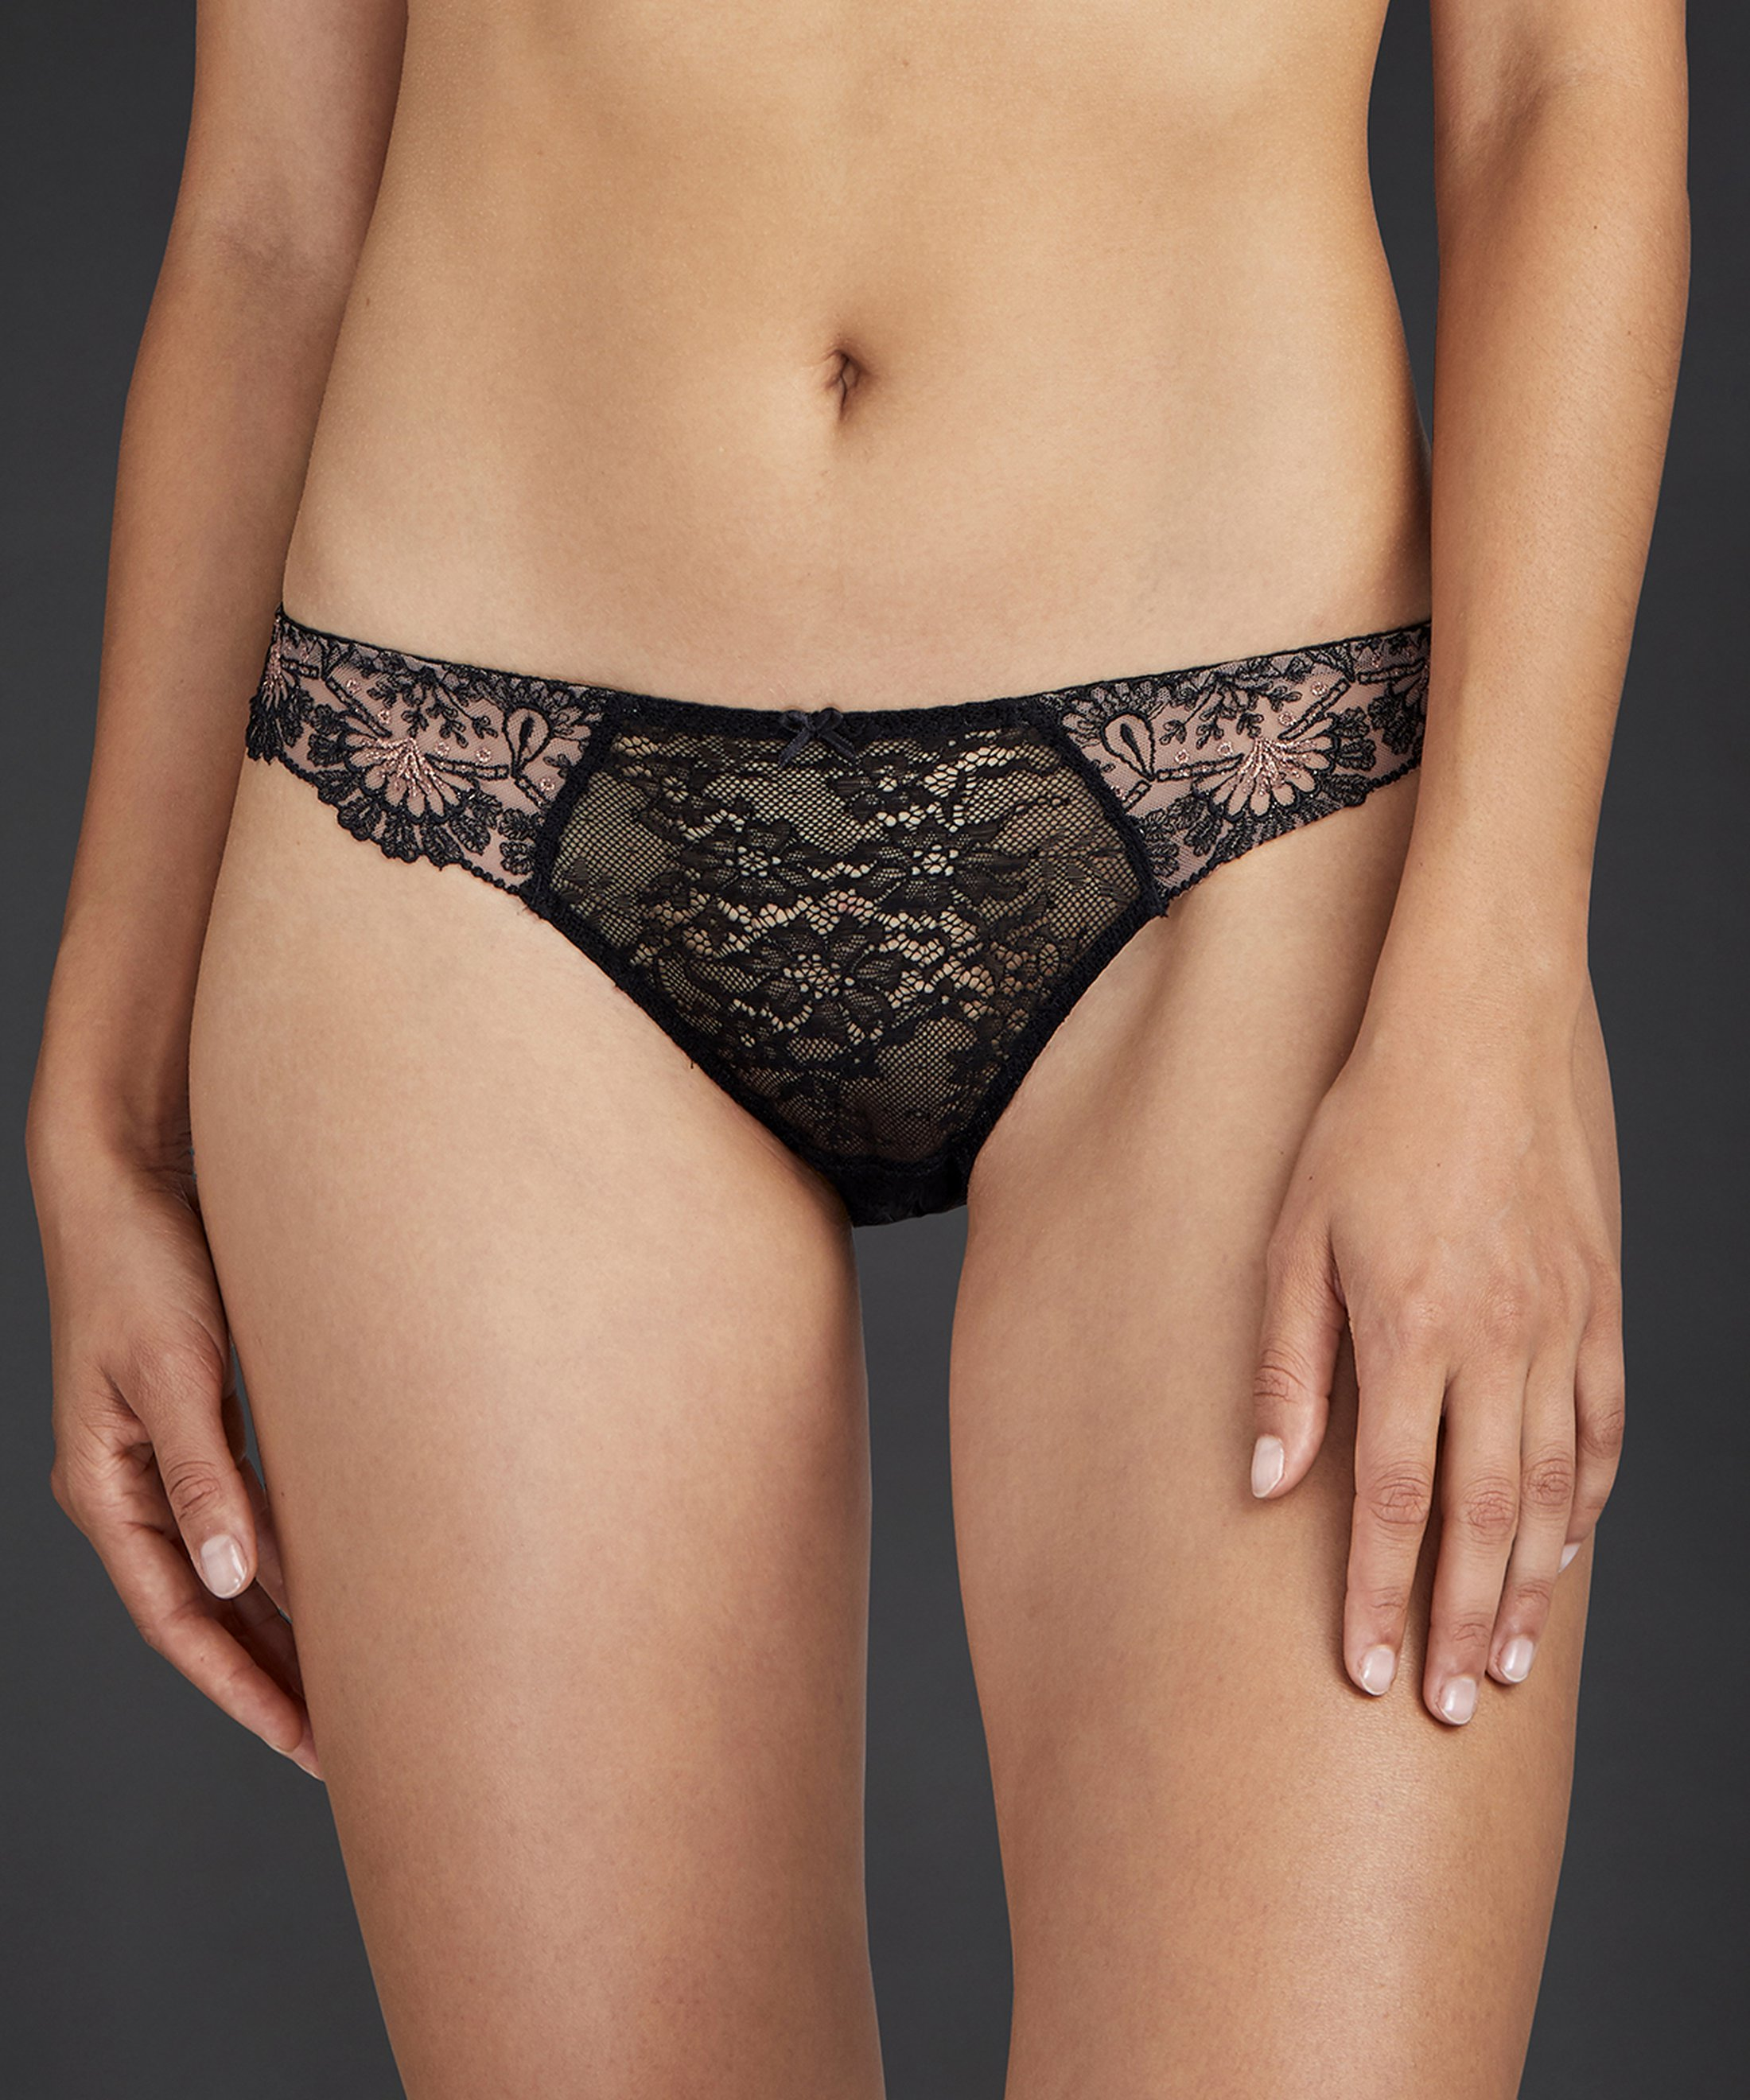 ART OF INK Mini-coeur brief Icone Black | Aubade